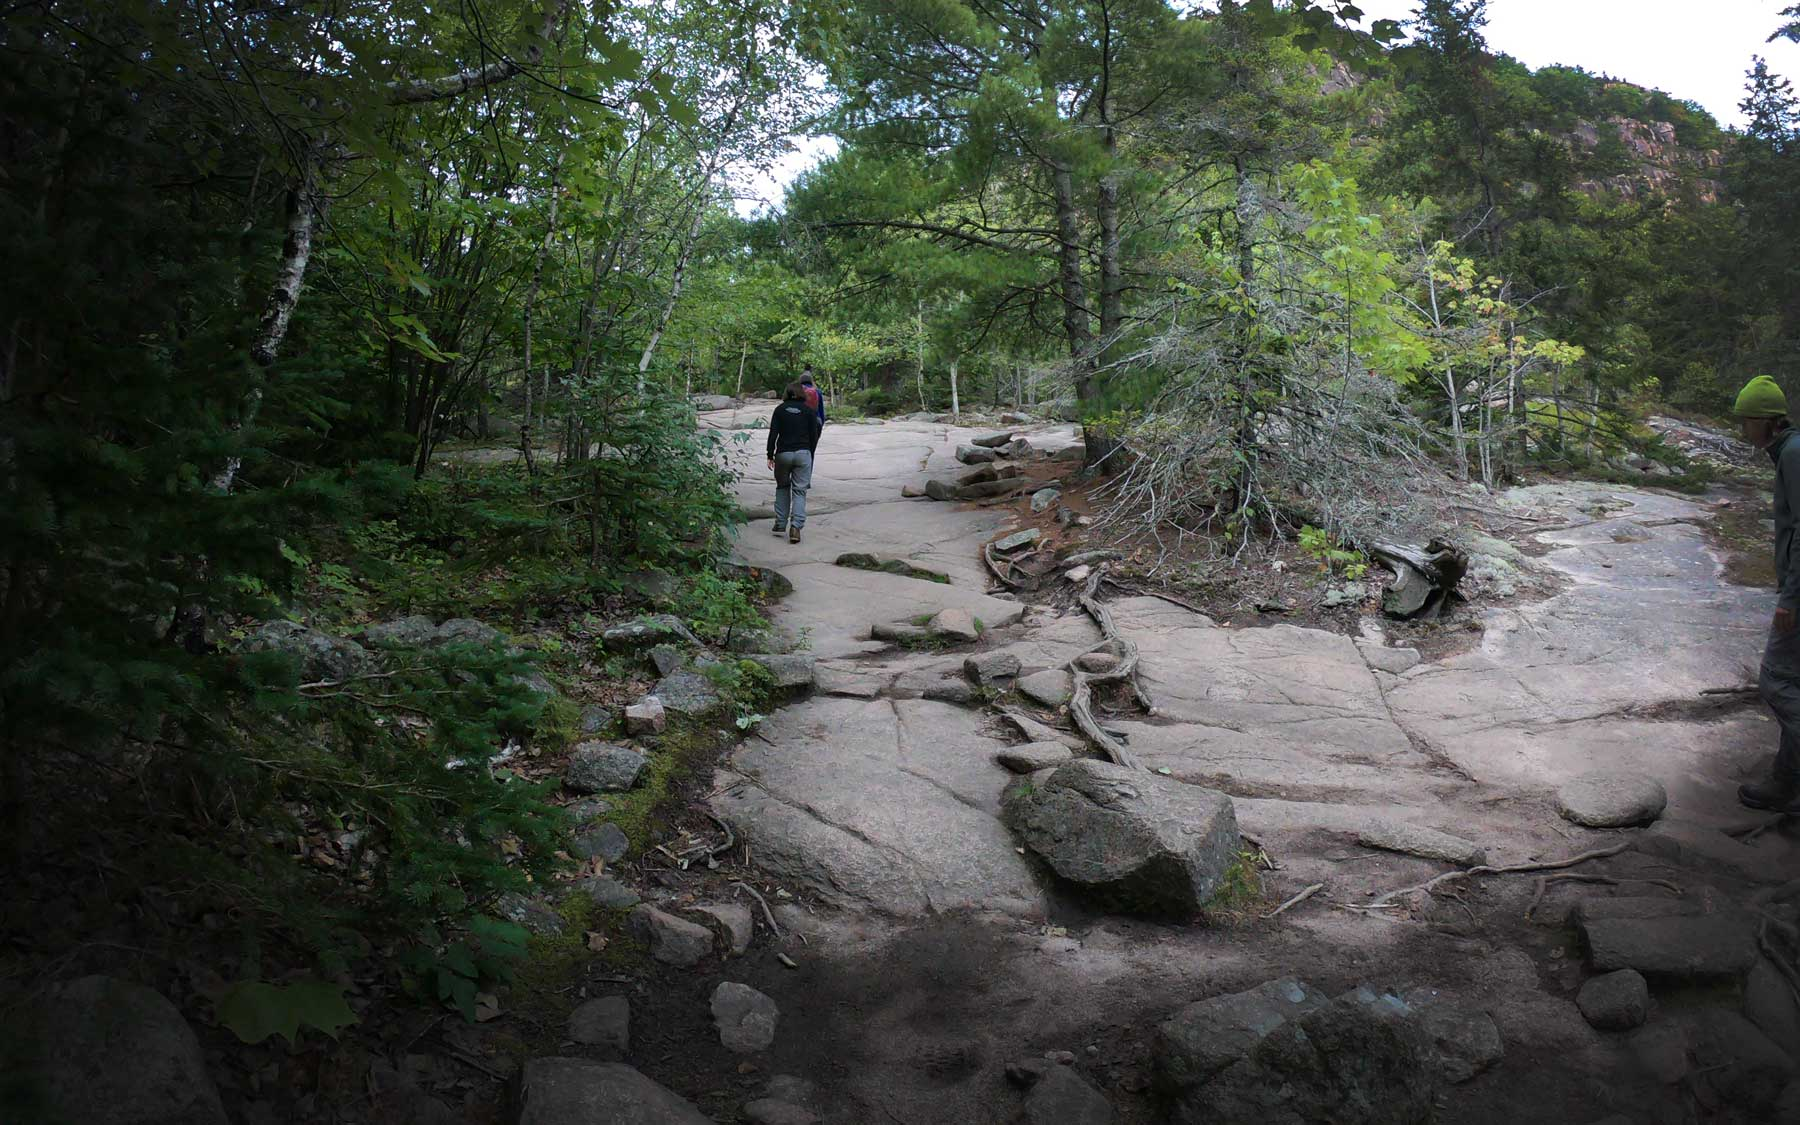 Hiking the Beehive Trail, Acadia National Park, Maine